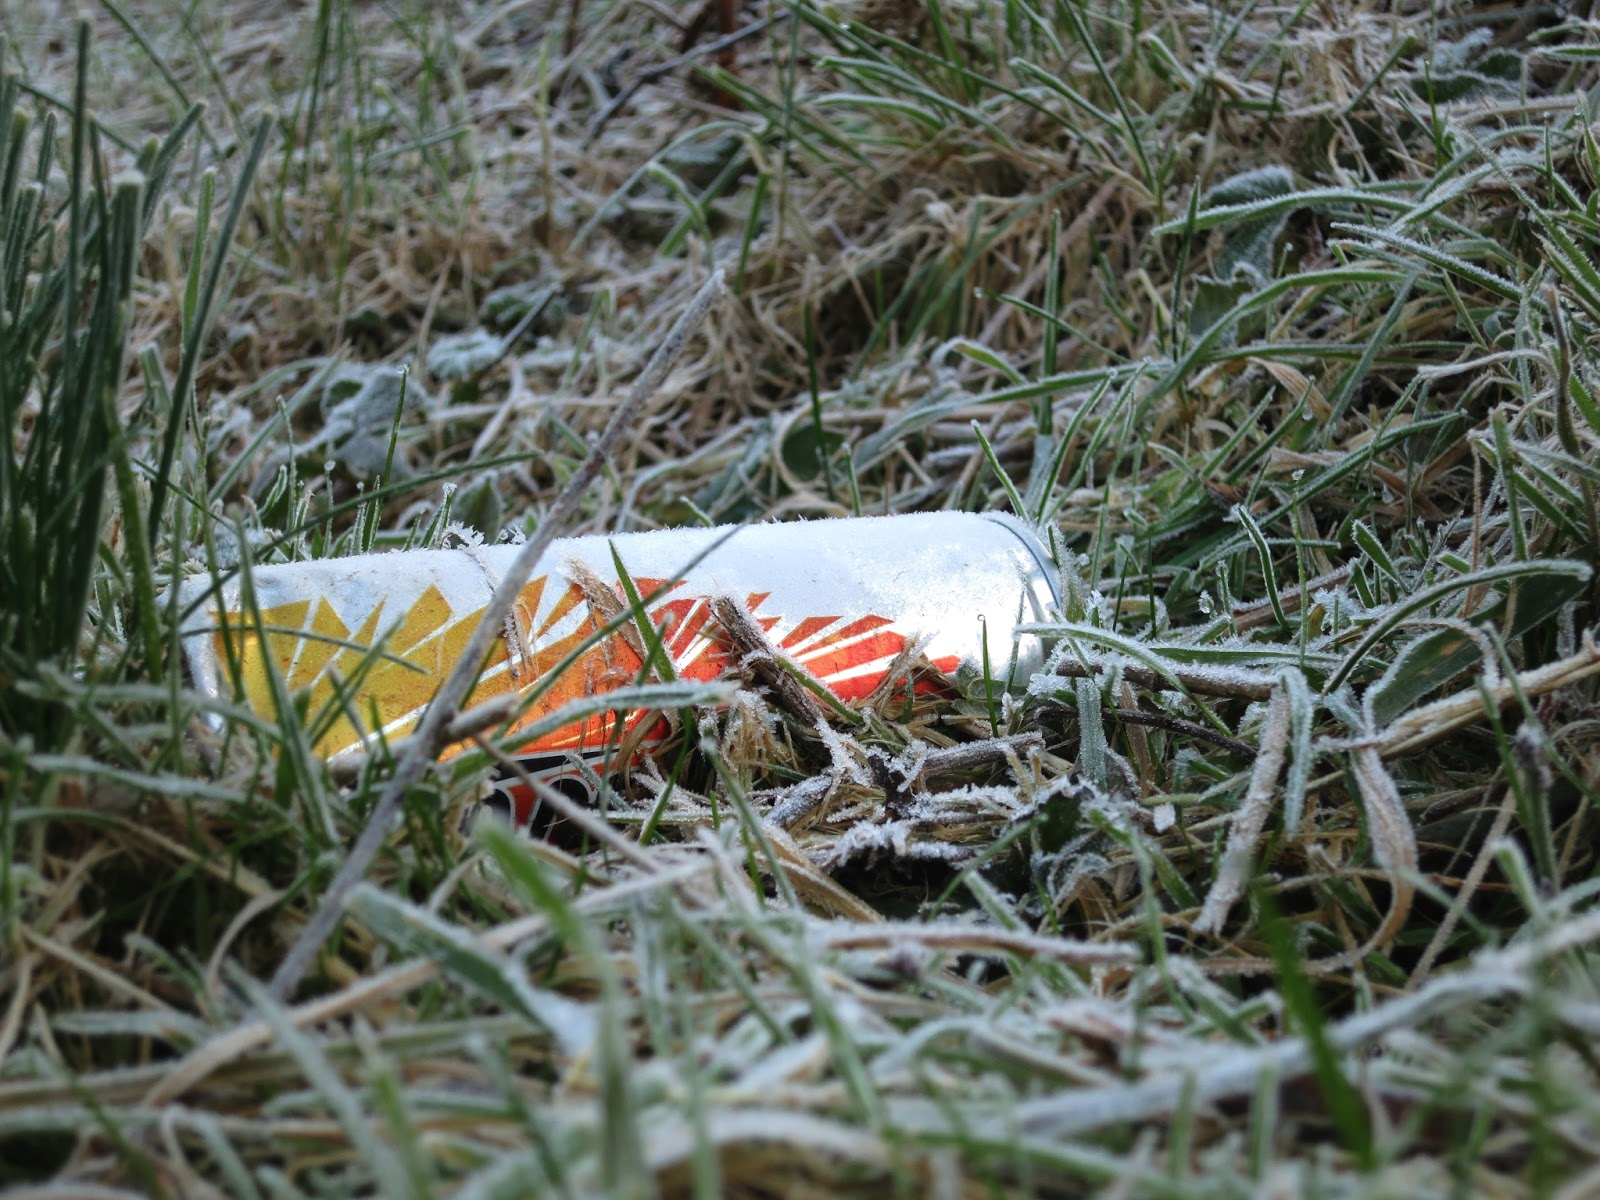 White, orange and yellow frosted drinks can lying in frosted grass.